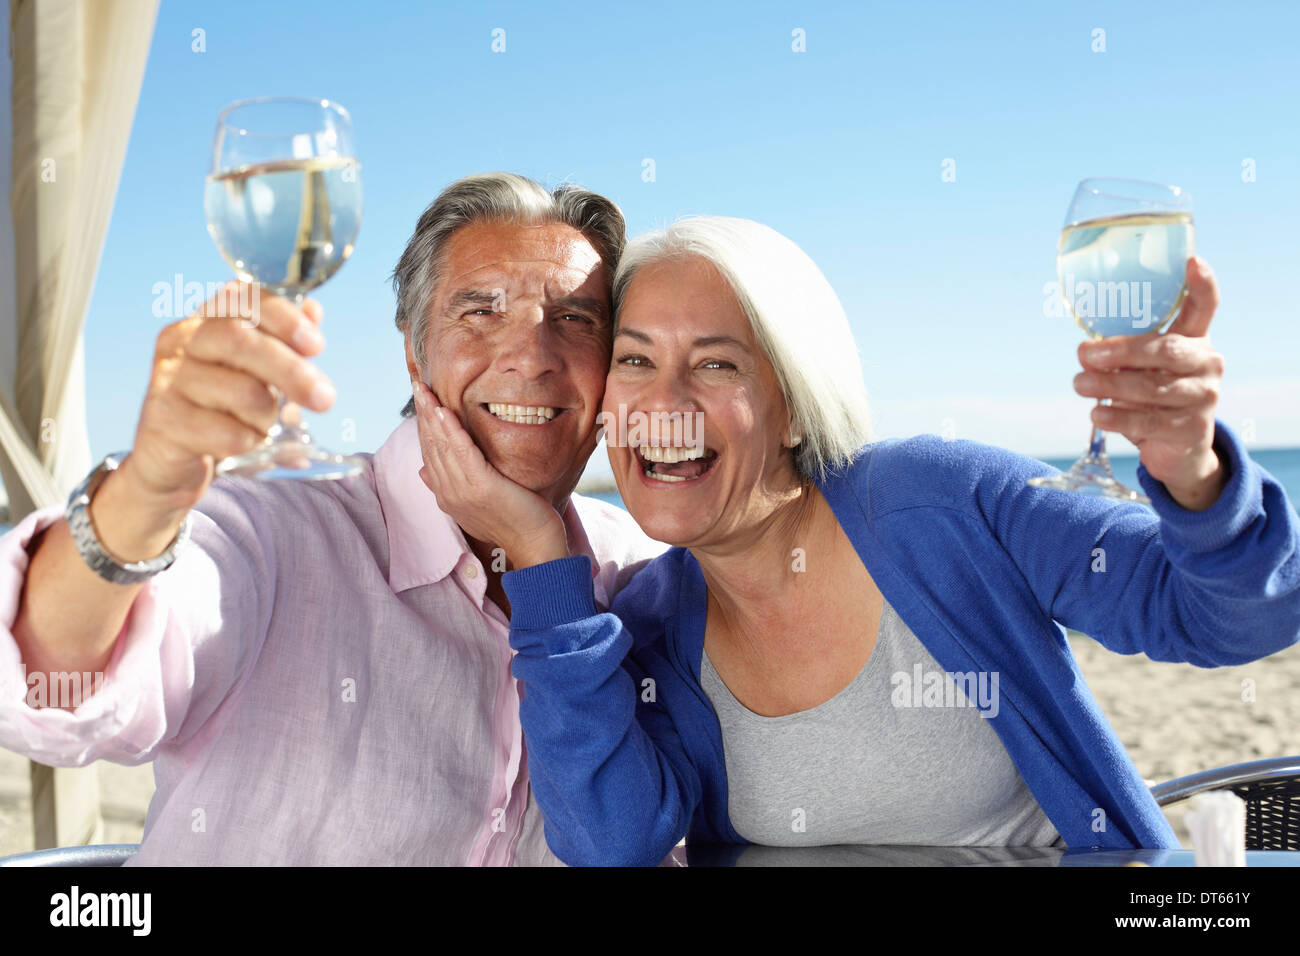 Couple enjoying wine par station Photo Stock